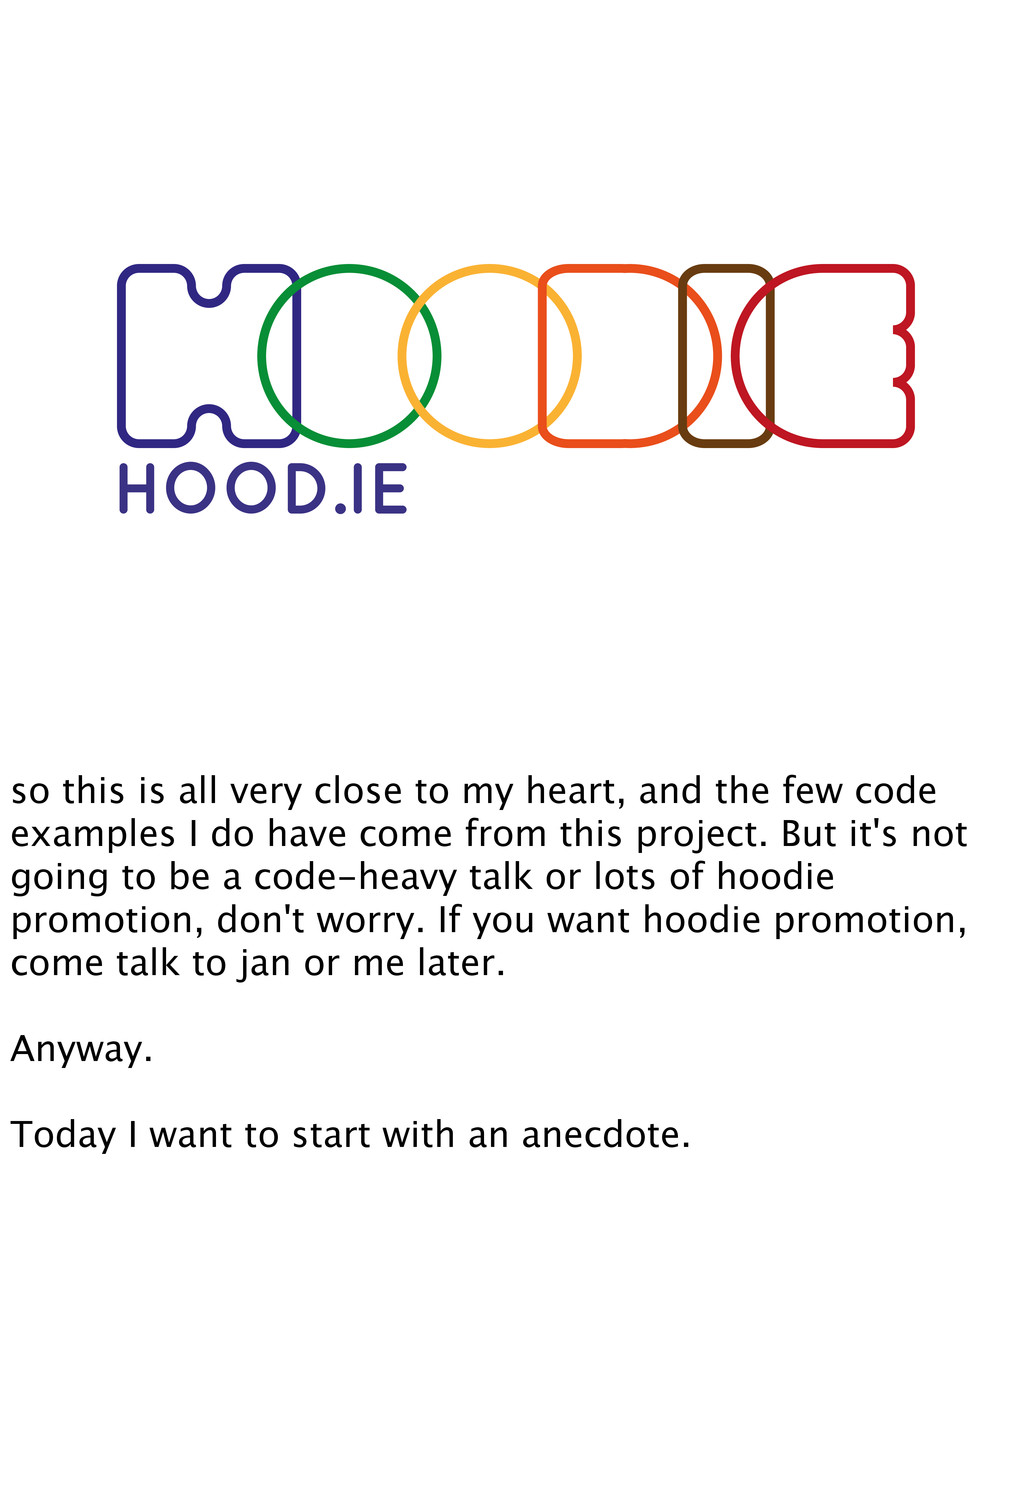 HOOD.IE so this is all very close to my heart, ...